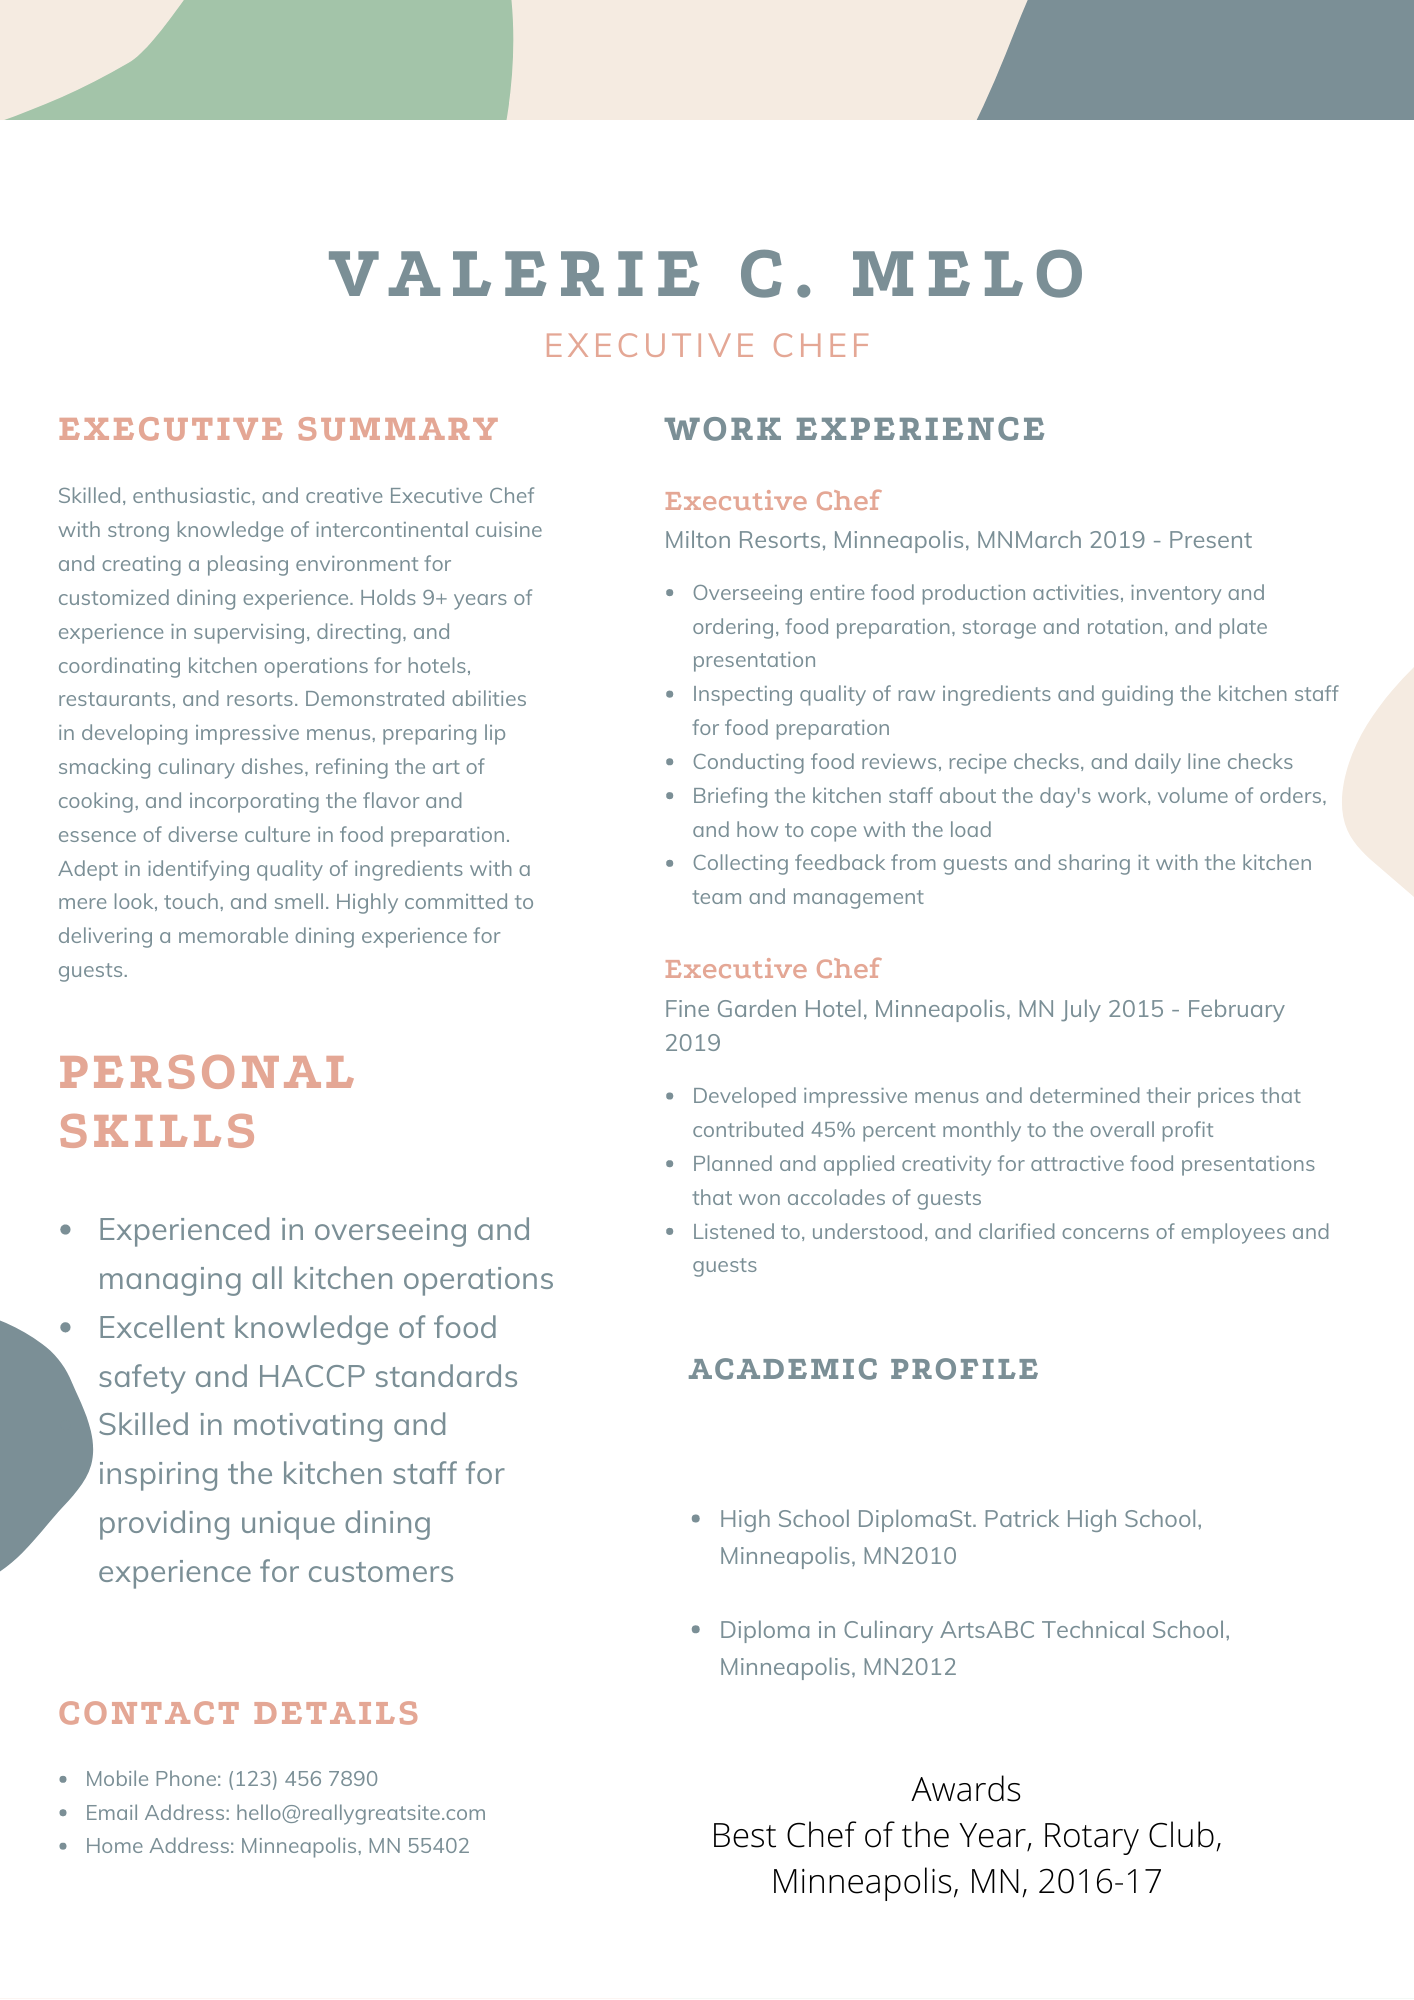 Executive Chef Resume Sample in 2020 | Chef resume ...